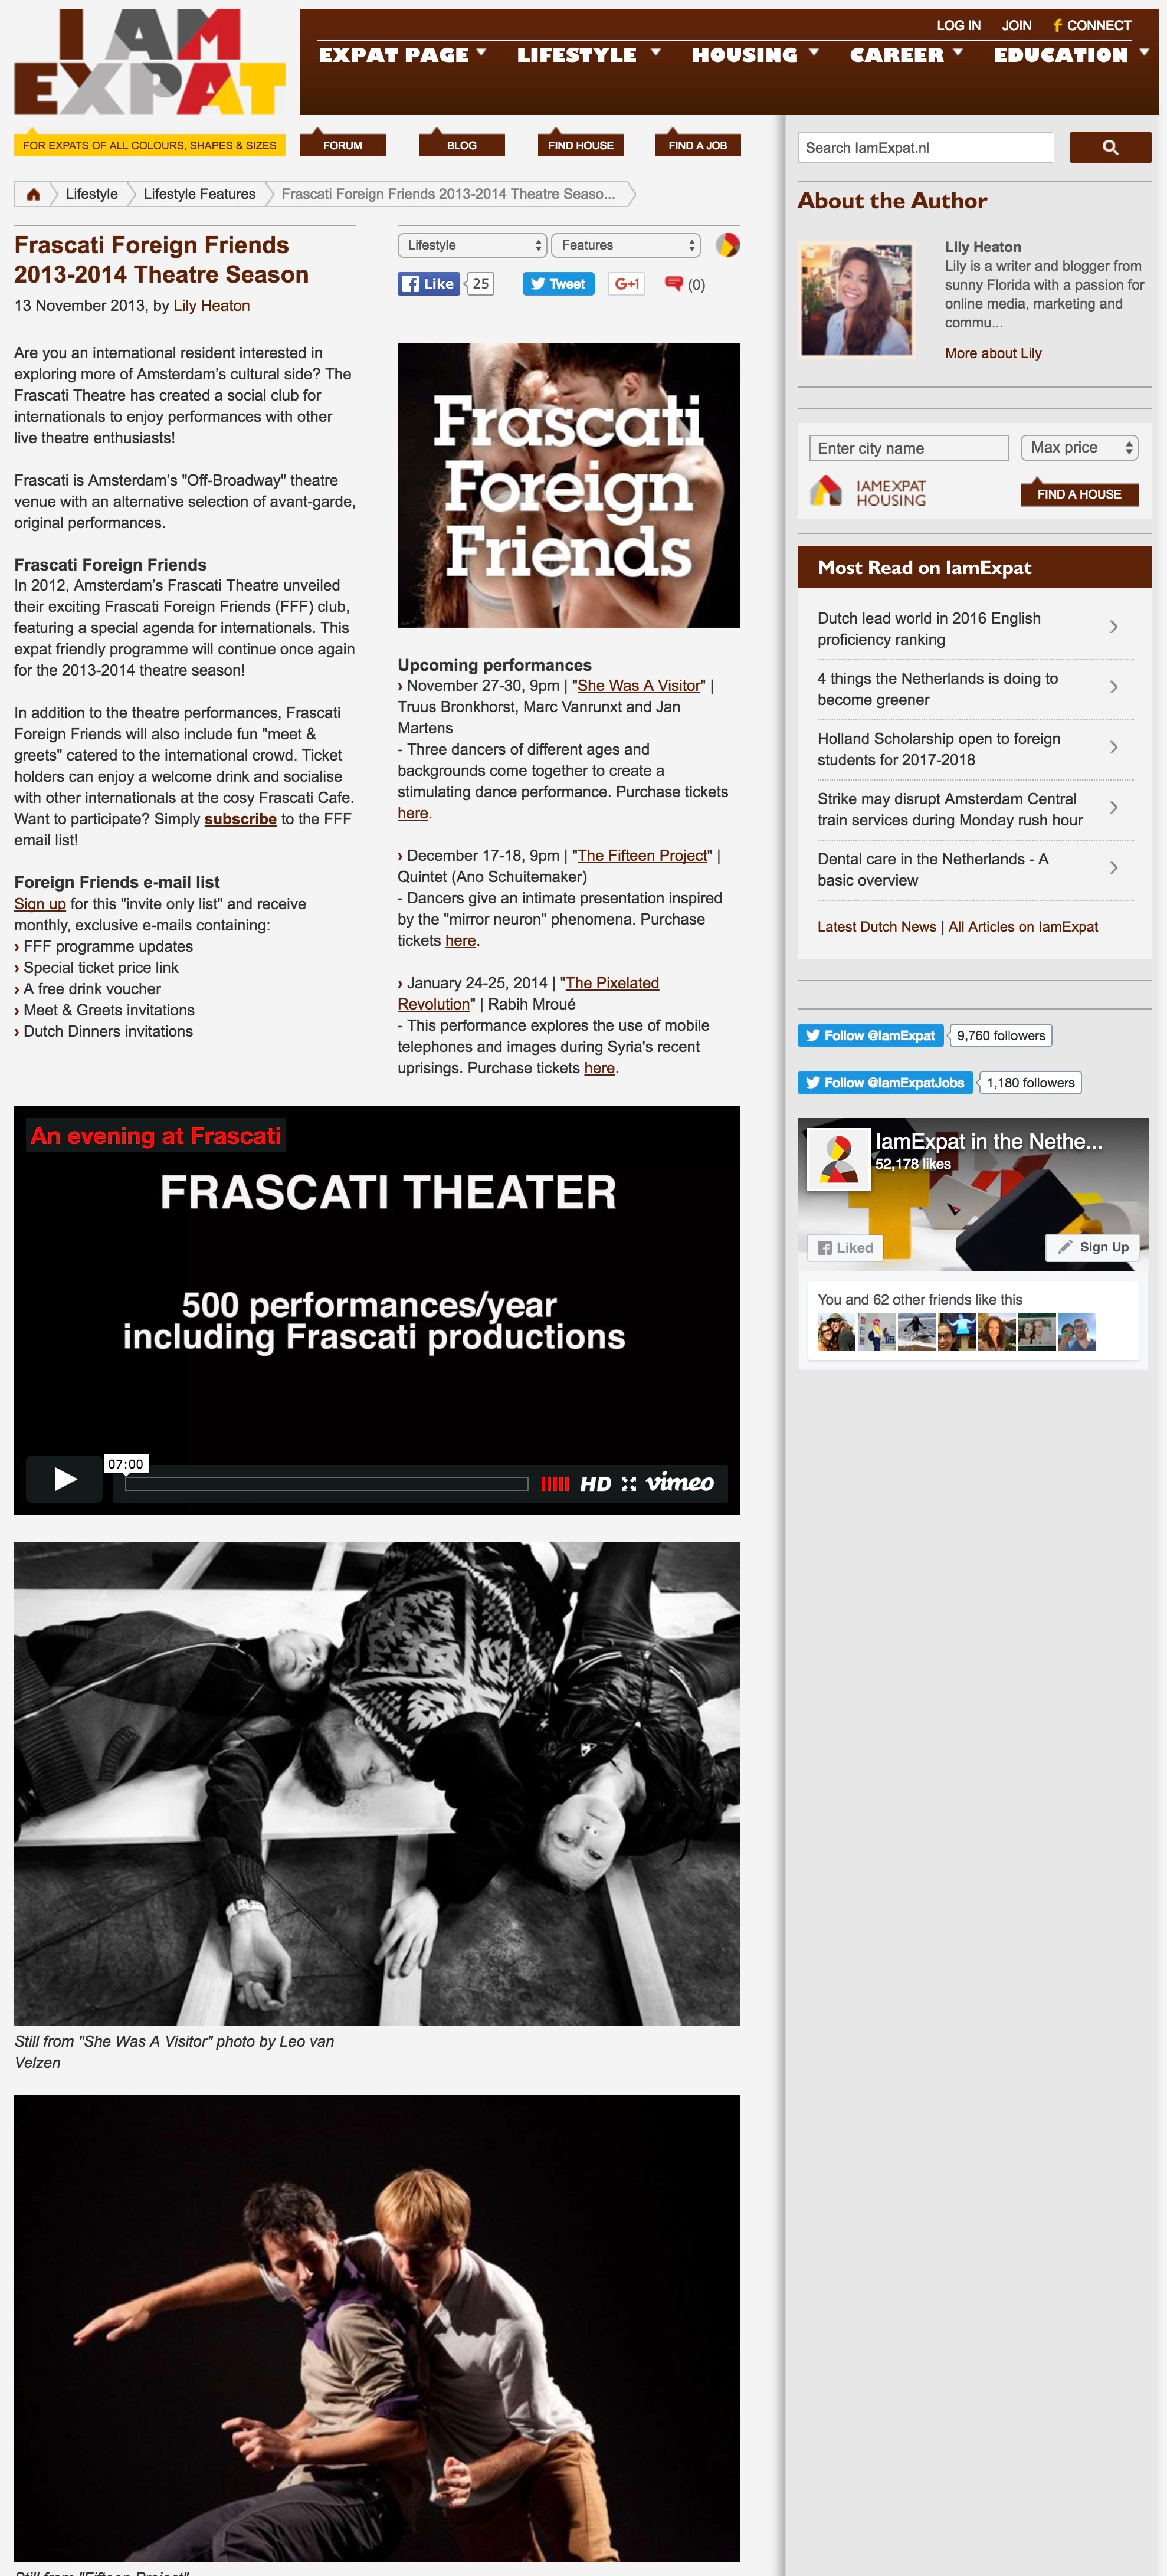 Frascati Foreign Friends 2013-2014 Theatre Season